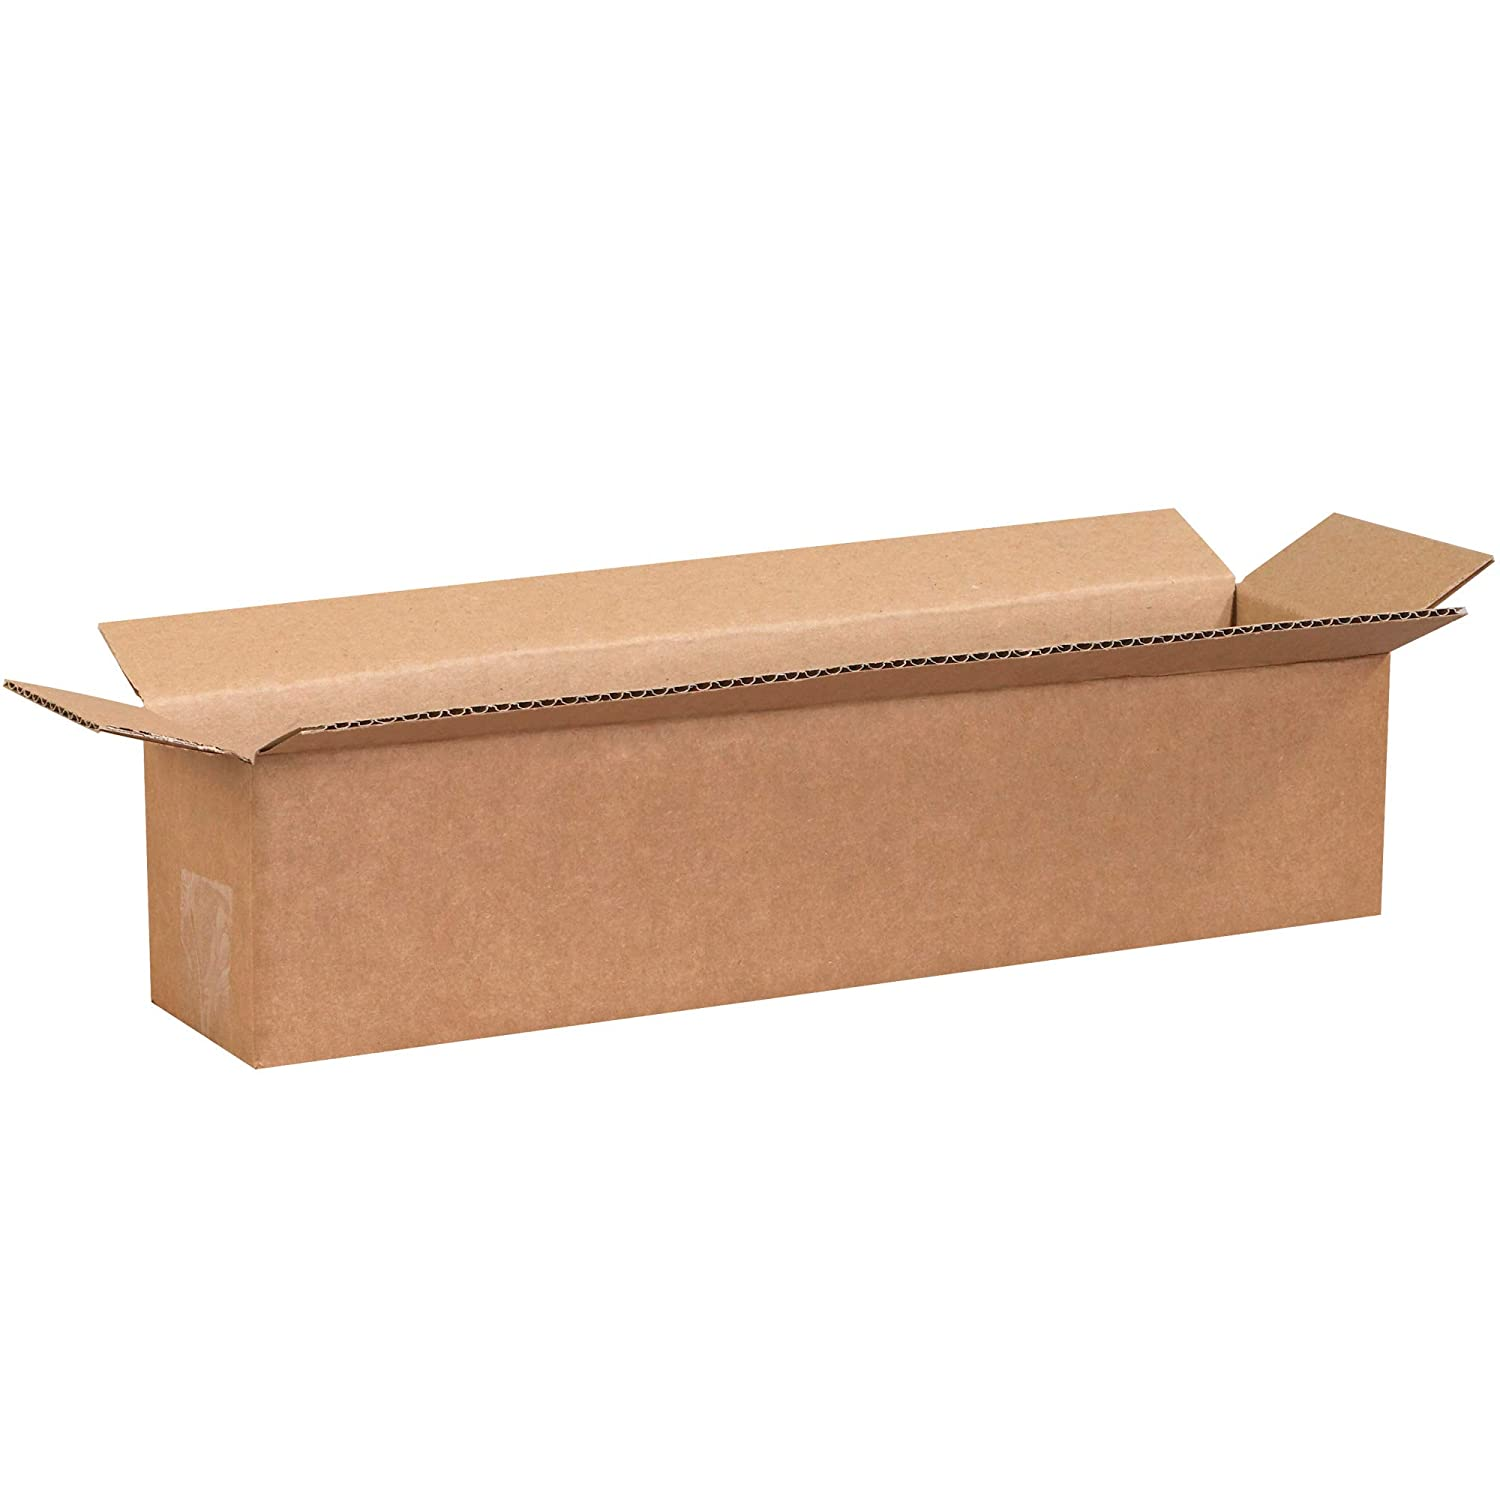 Pallet of 250 Corrugated Boxes LxWxH New 20 x 18 x 6 200#